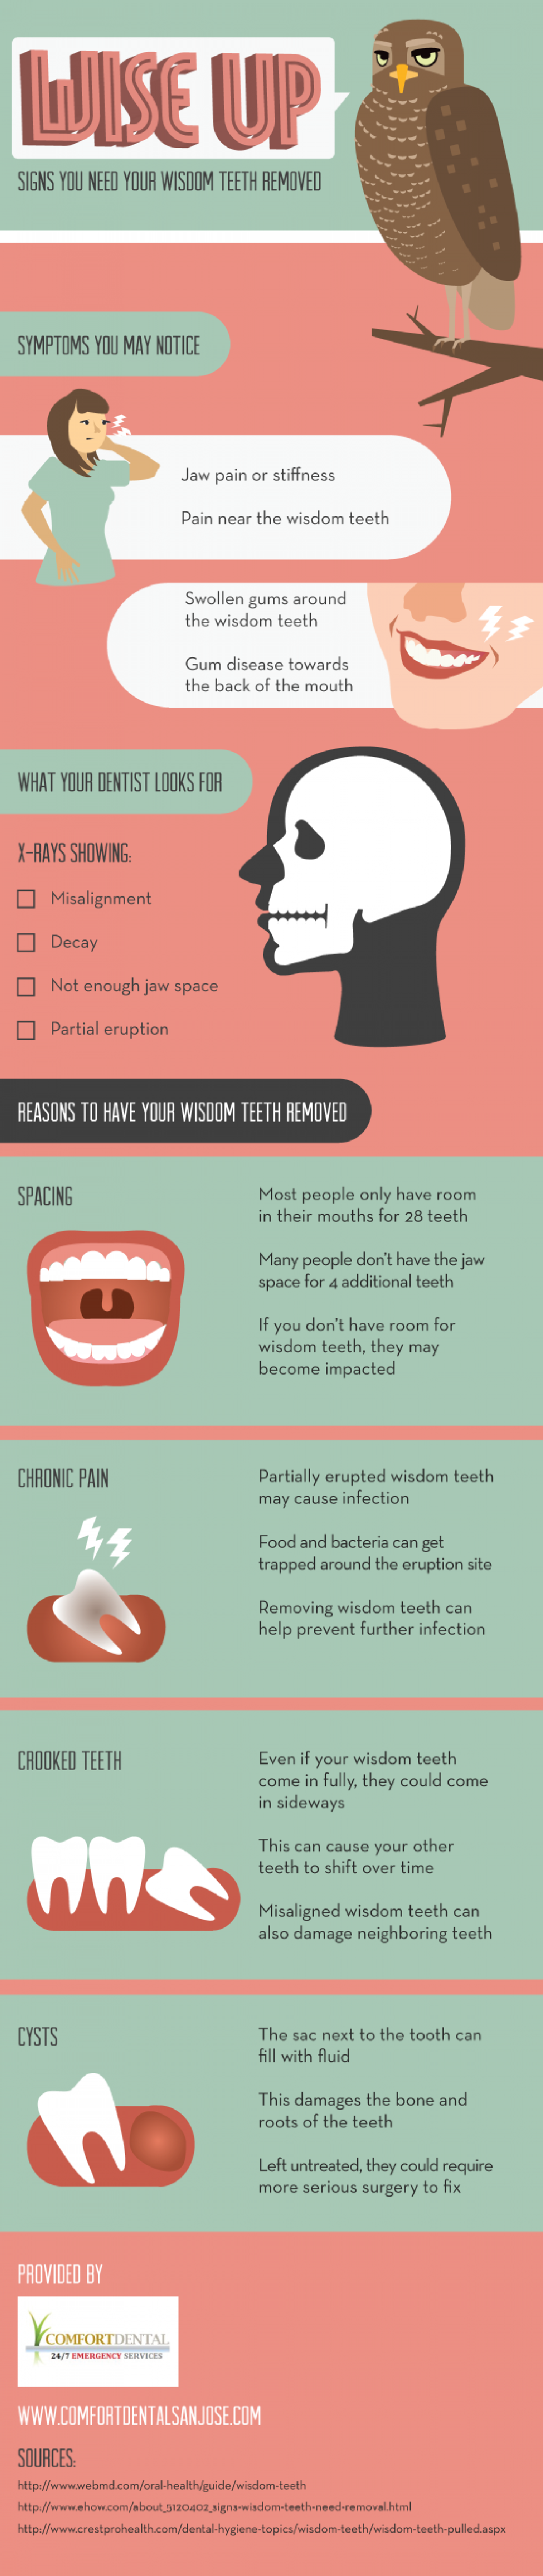 Wise Up: Signs You Need Your Wisdom Teeth Removed Infographic